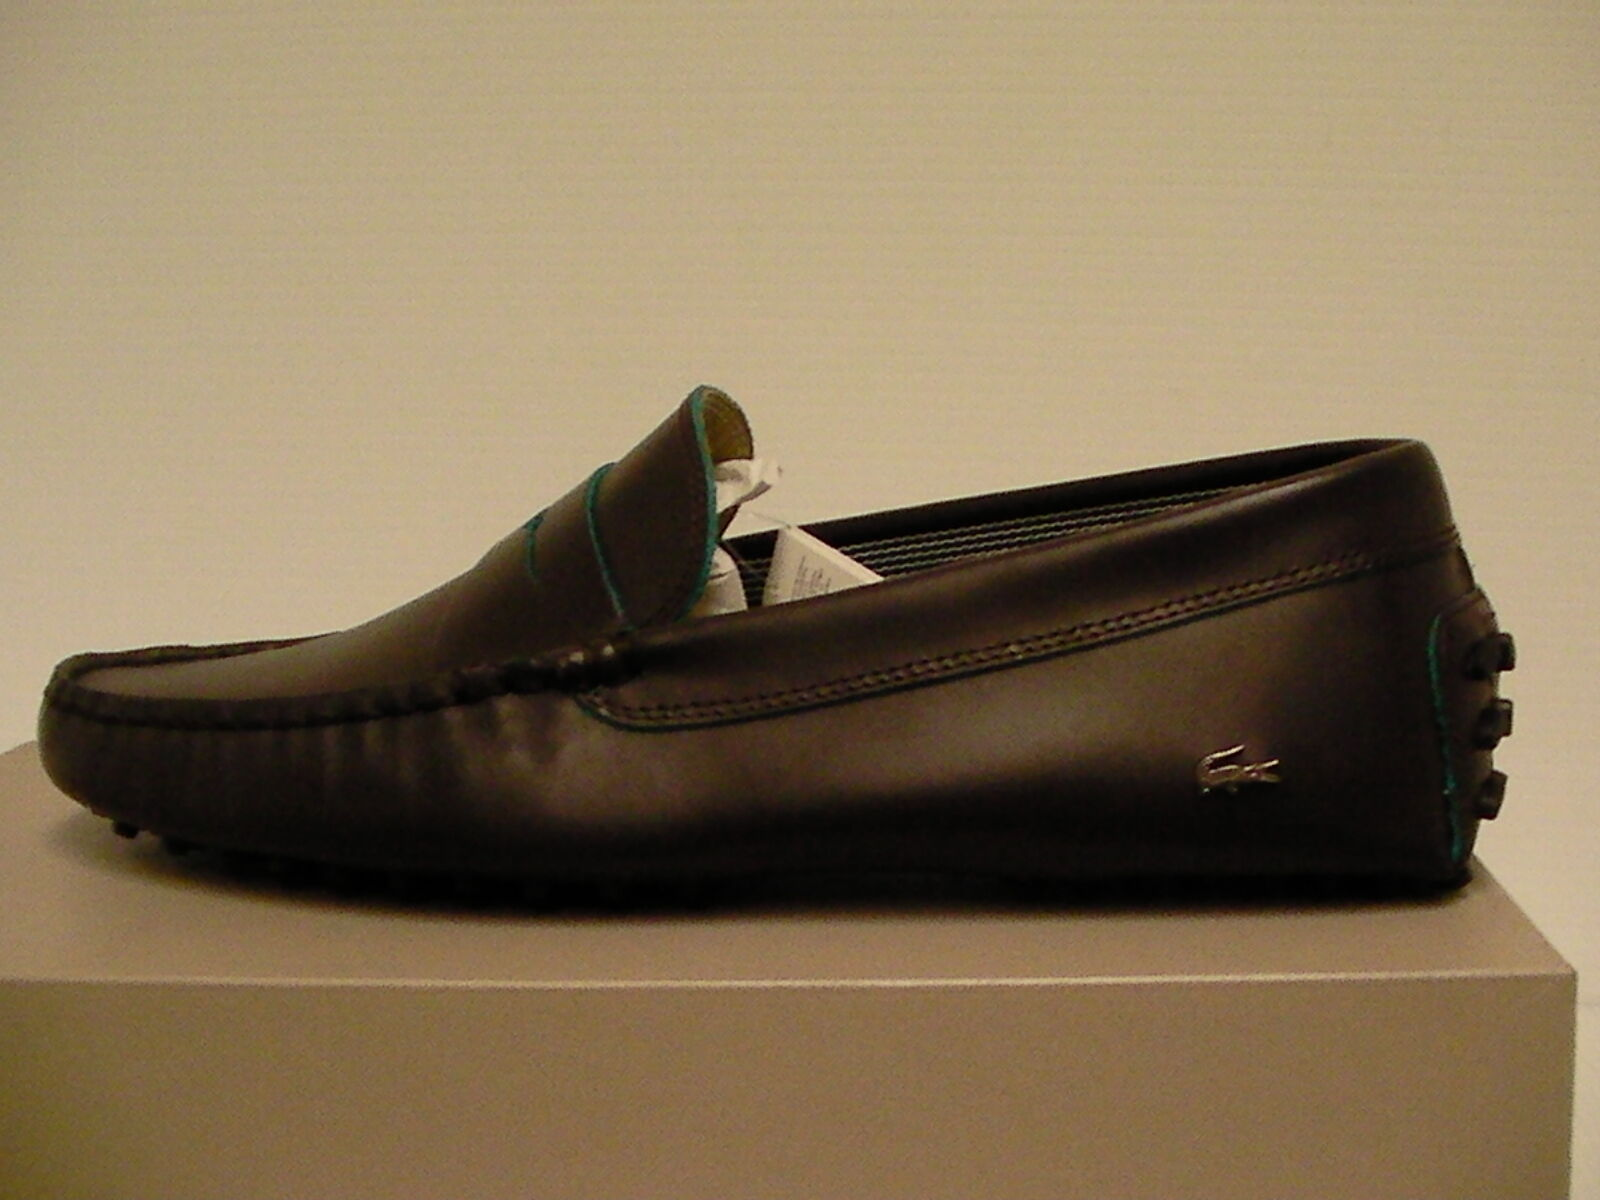 Lacoste casual shoes concours 10 spm leather dark brown size 11 us men